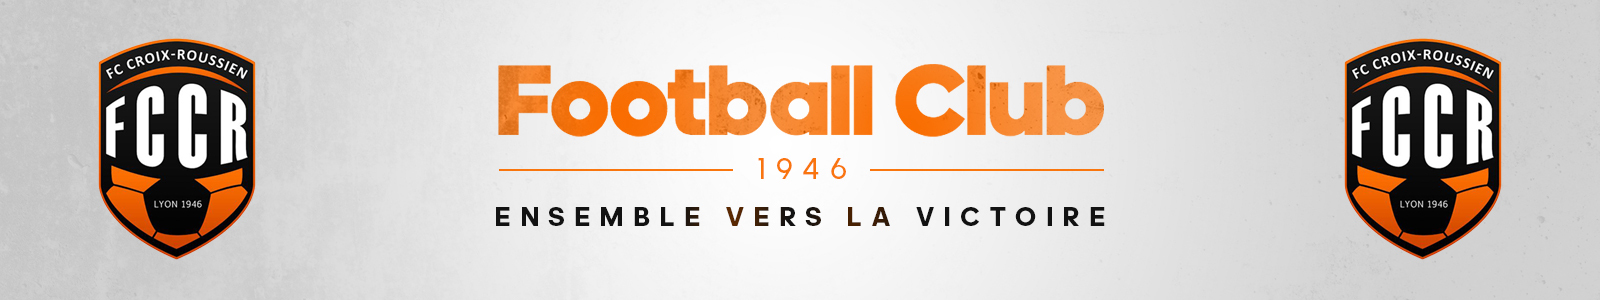 FOOTBALL CLUB CROIX ROUSSIEN LYON : site officiel du club de foot de LYON 4EME ARRONDISSEMENT - footeo